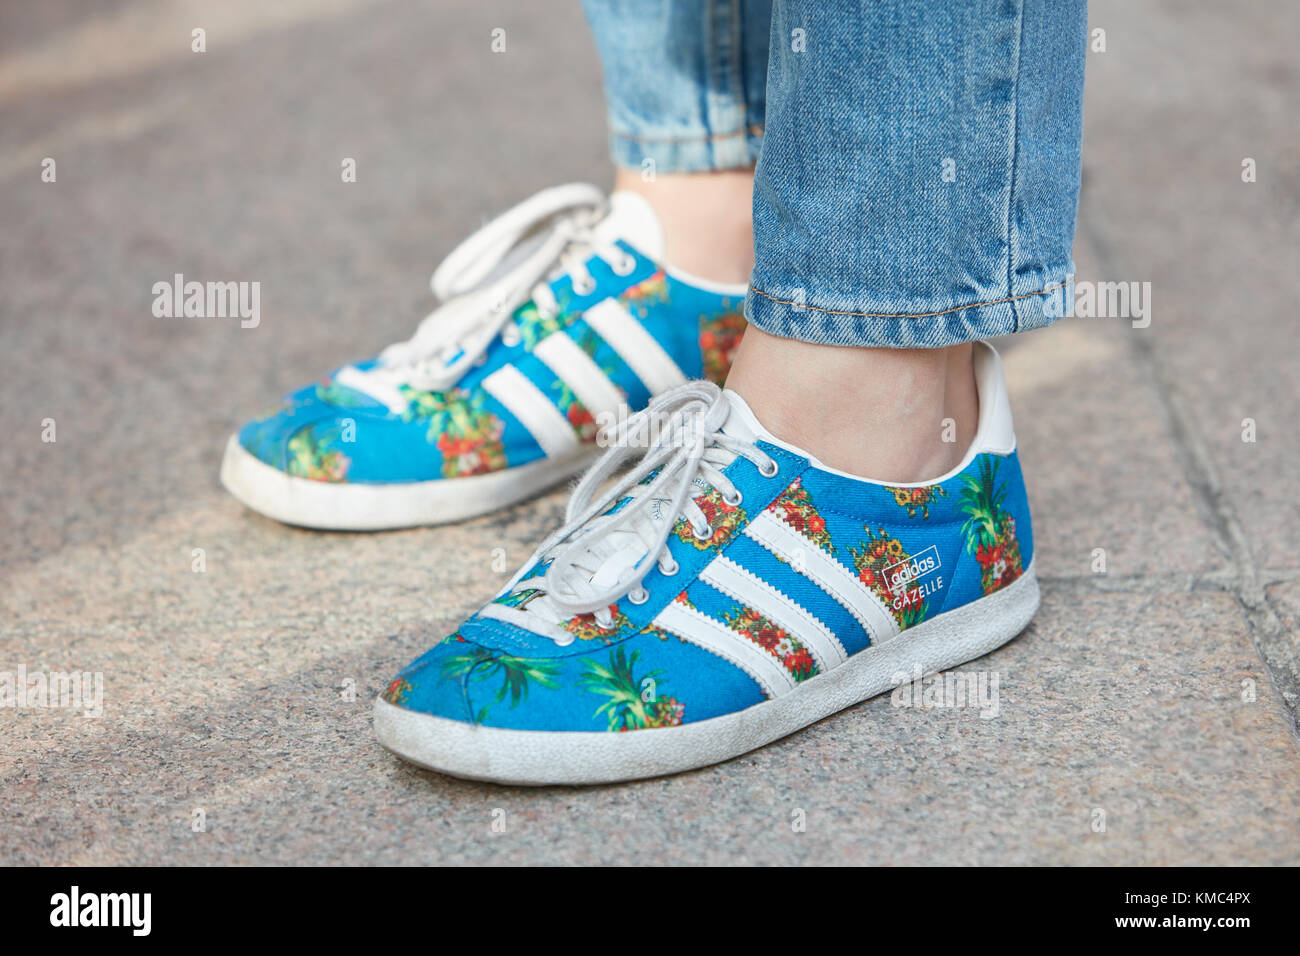 124d3a97b4e Pineapples 23 Milan Woman Adidas Blue Shoes With September vn8q7O